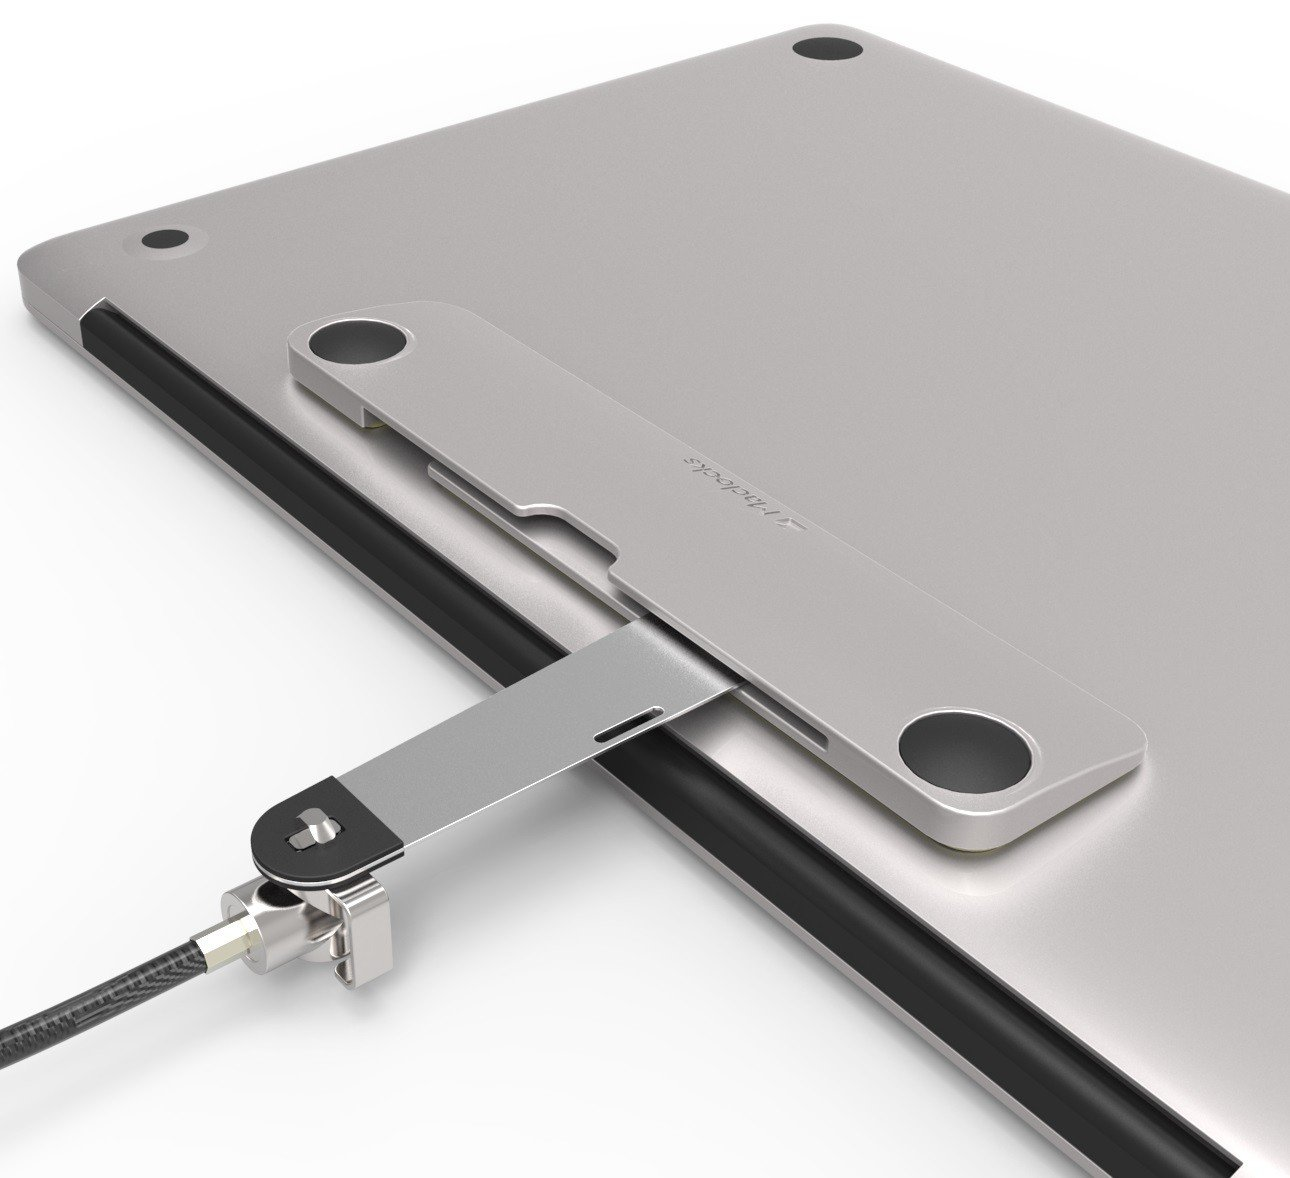 Maclocks BLD01KL Blade Universal Laptop and Tablet Bracket with Keyed Straight Cable Lock (Silver) by Compulocks (Image #4)